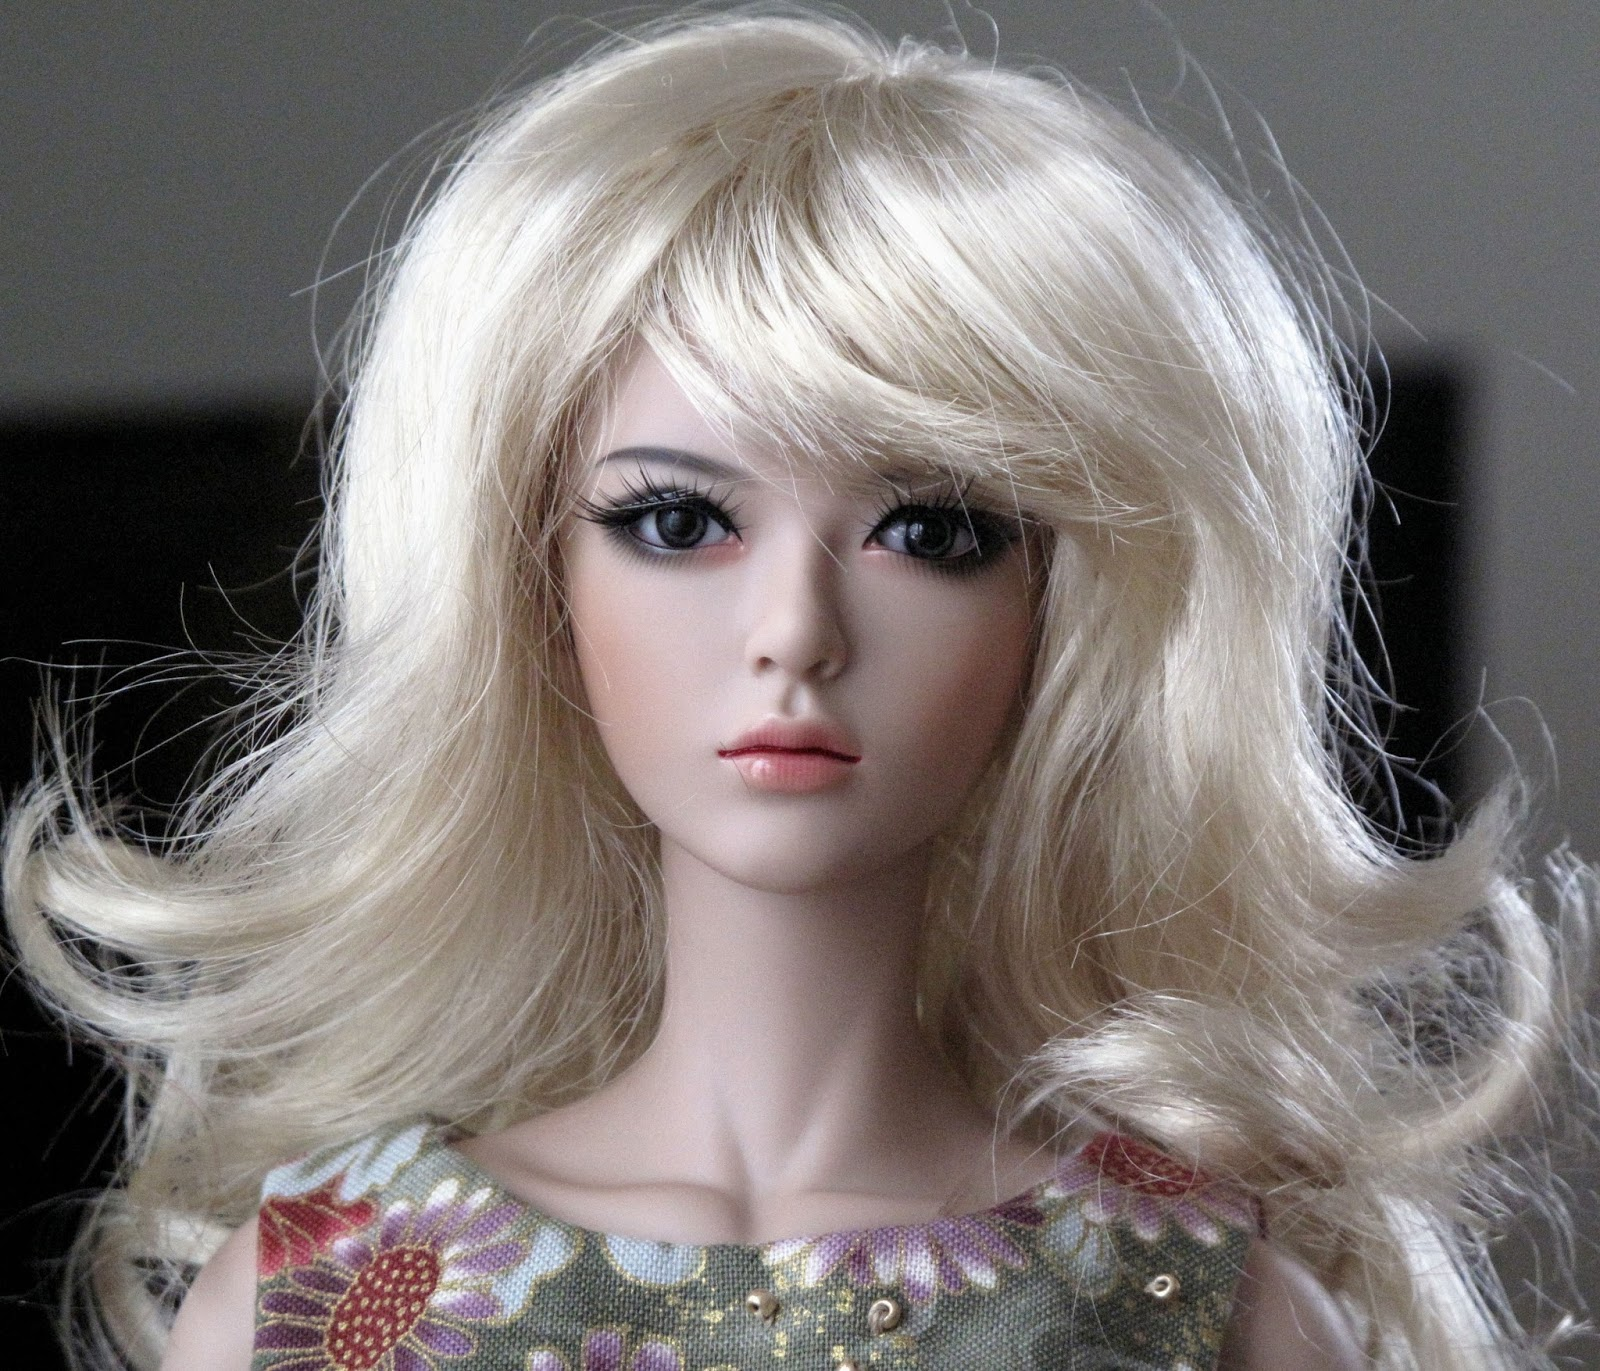 Raccoon Gene And Lucy Home At Last As The Resin World Turns Catriona Monique Top Handle Bag Grey Because Someone On Den Of Angels Asked To See A Blonde Here She Is In Golds Shaine Champagne I Dont Know If This Wig Naturally Has